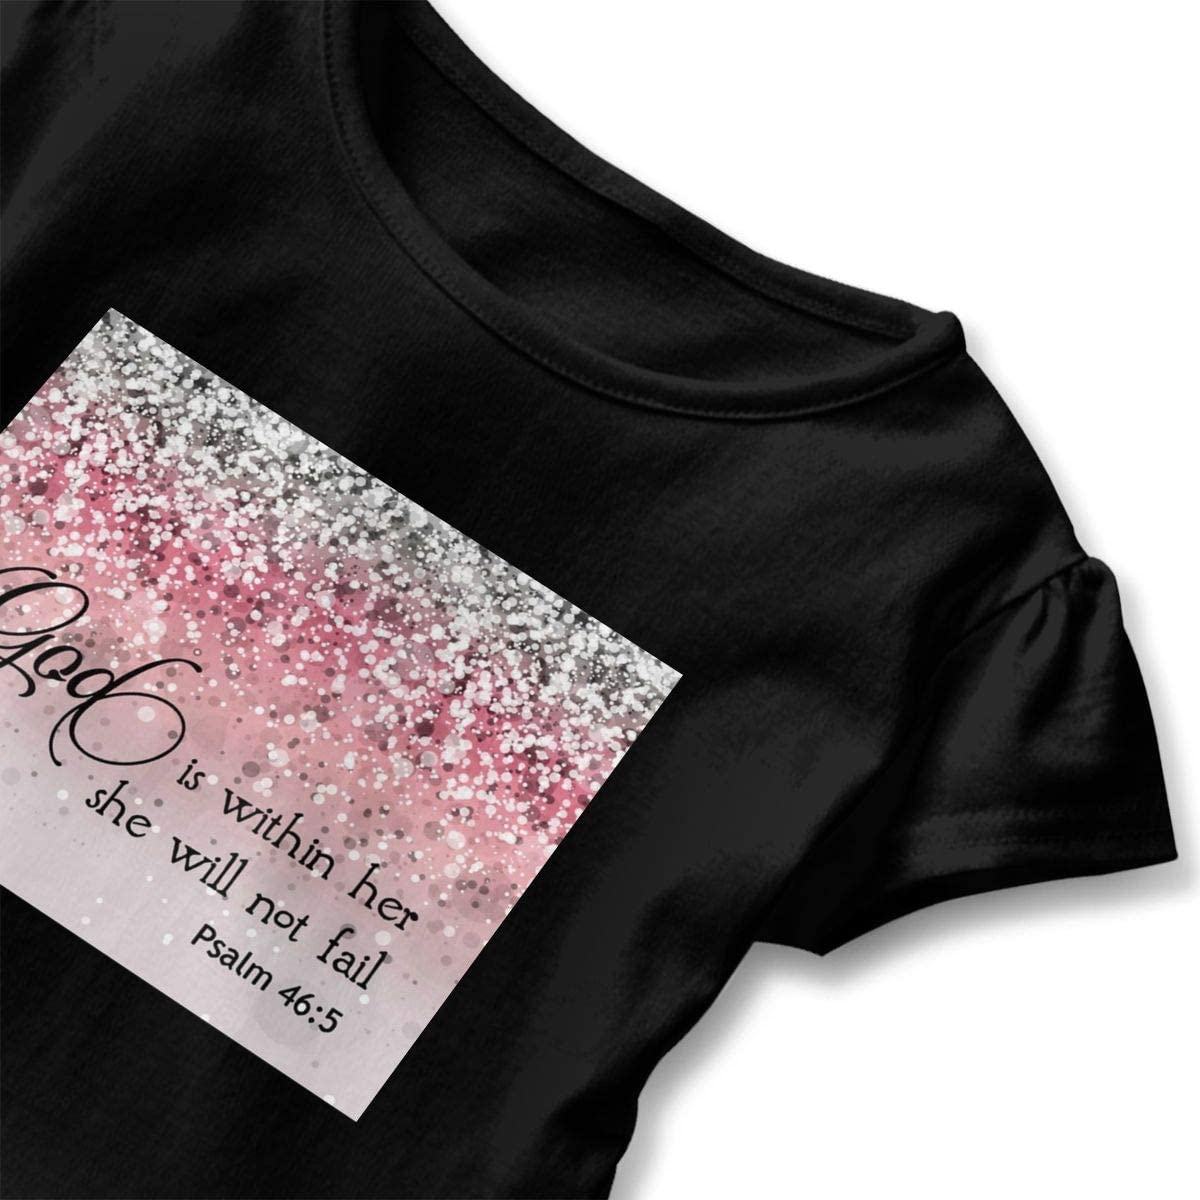 Not Available Pink Sparkles Glitter Baby Girls Short Sleeve T-Shirt Flounced Graphic Tees for 2-6 Years Old Baby